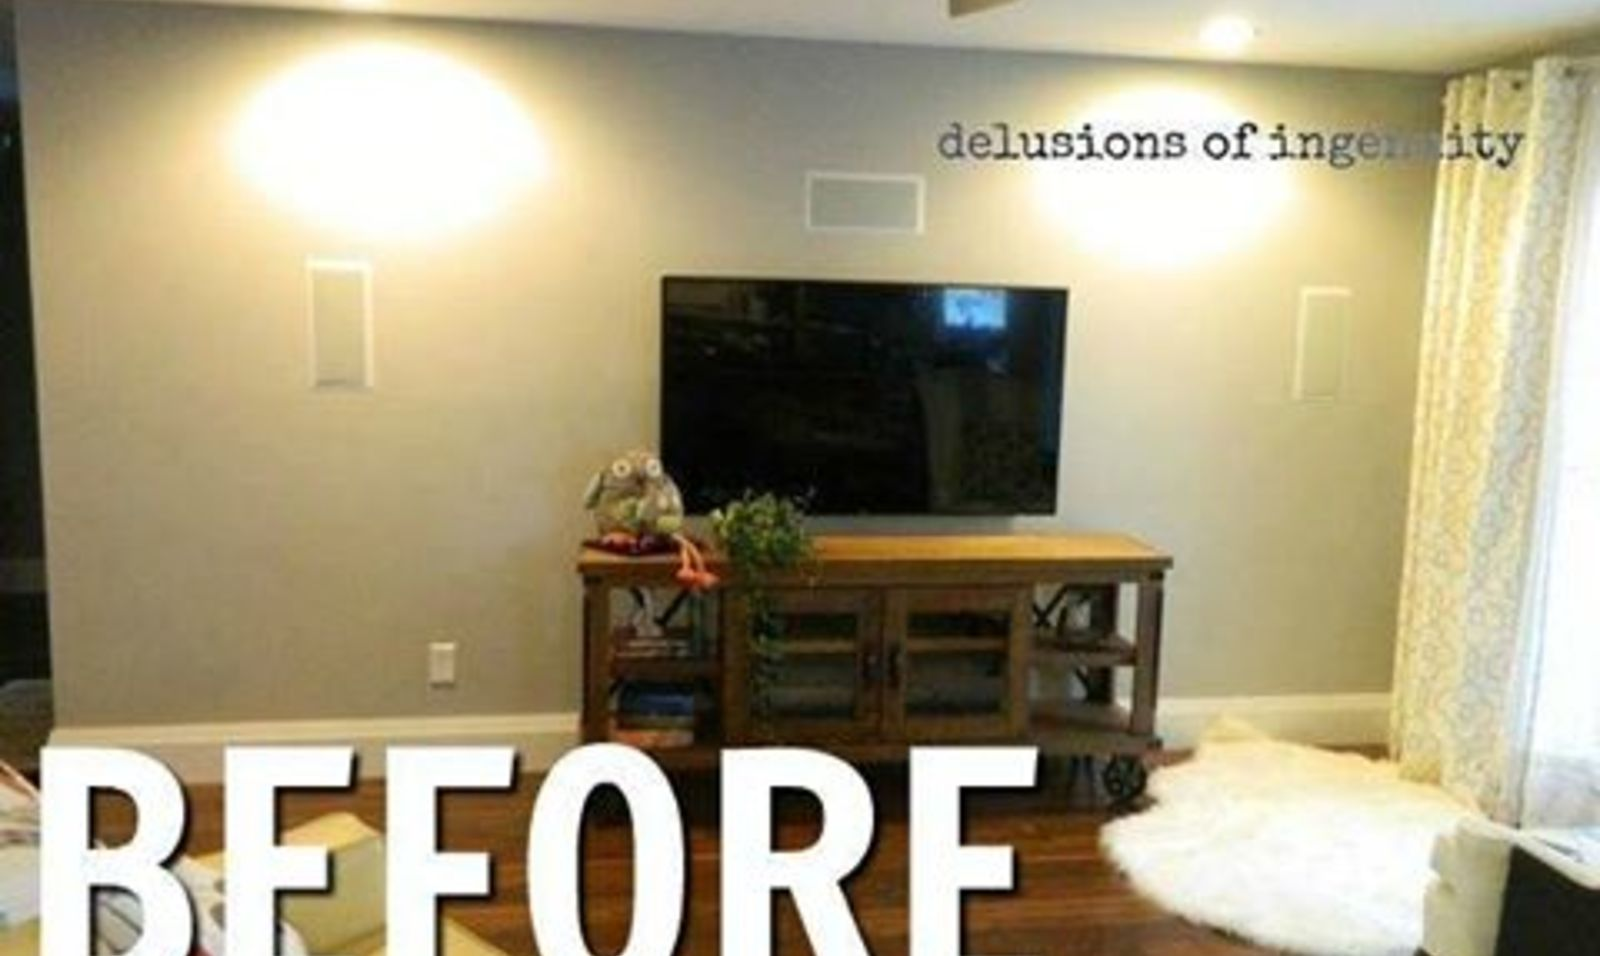 13 Lowbudget Ways To Decorate Your Living Room Walls. Dancing Around The Kitchen In The Refrigerator Light. Kitchen Island Tables Ikea. Kitchen Appliance Stores Perth. Kitchen Backsplash Tile Home Depot. Soup Kitchen Long Island. 220 Volt Small Kitchen Appliances. Best Light For Kitchen Ceiling. Island In Kitchen